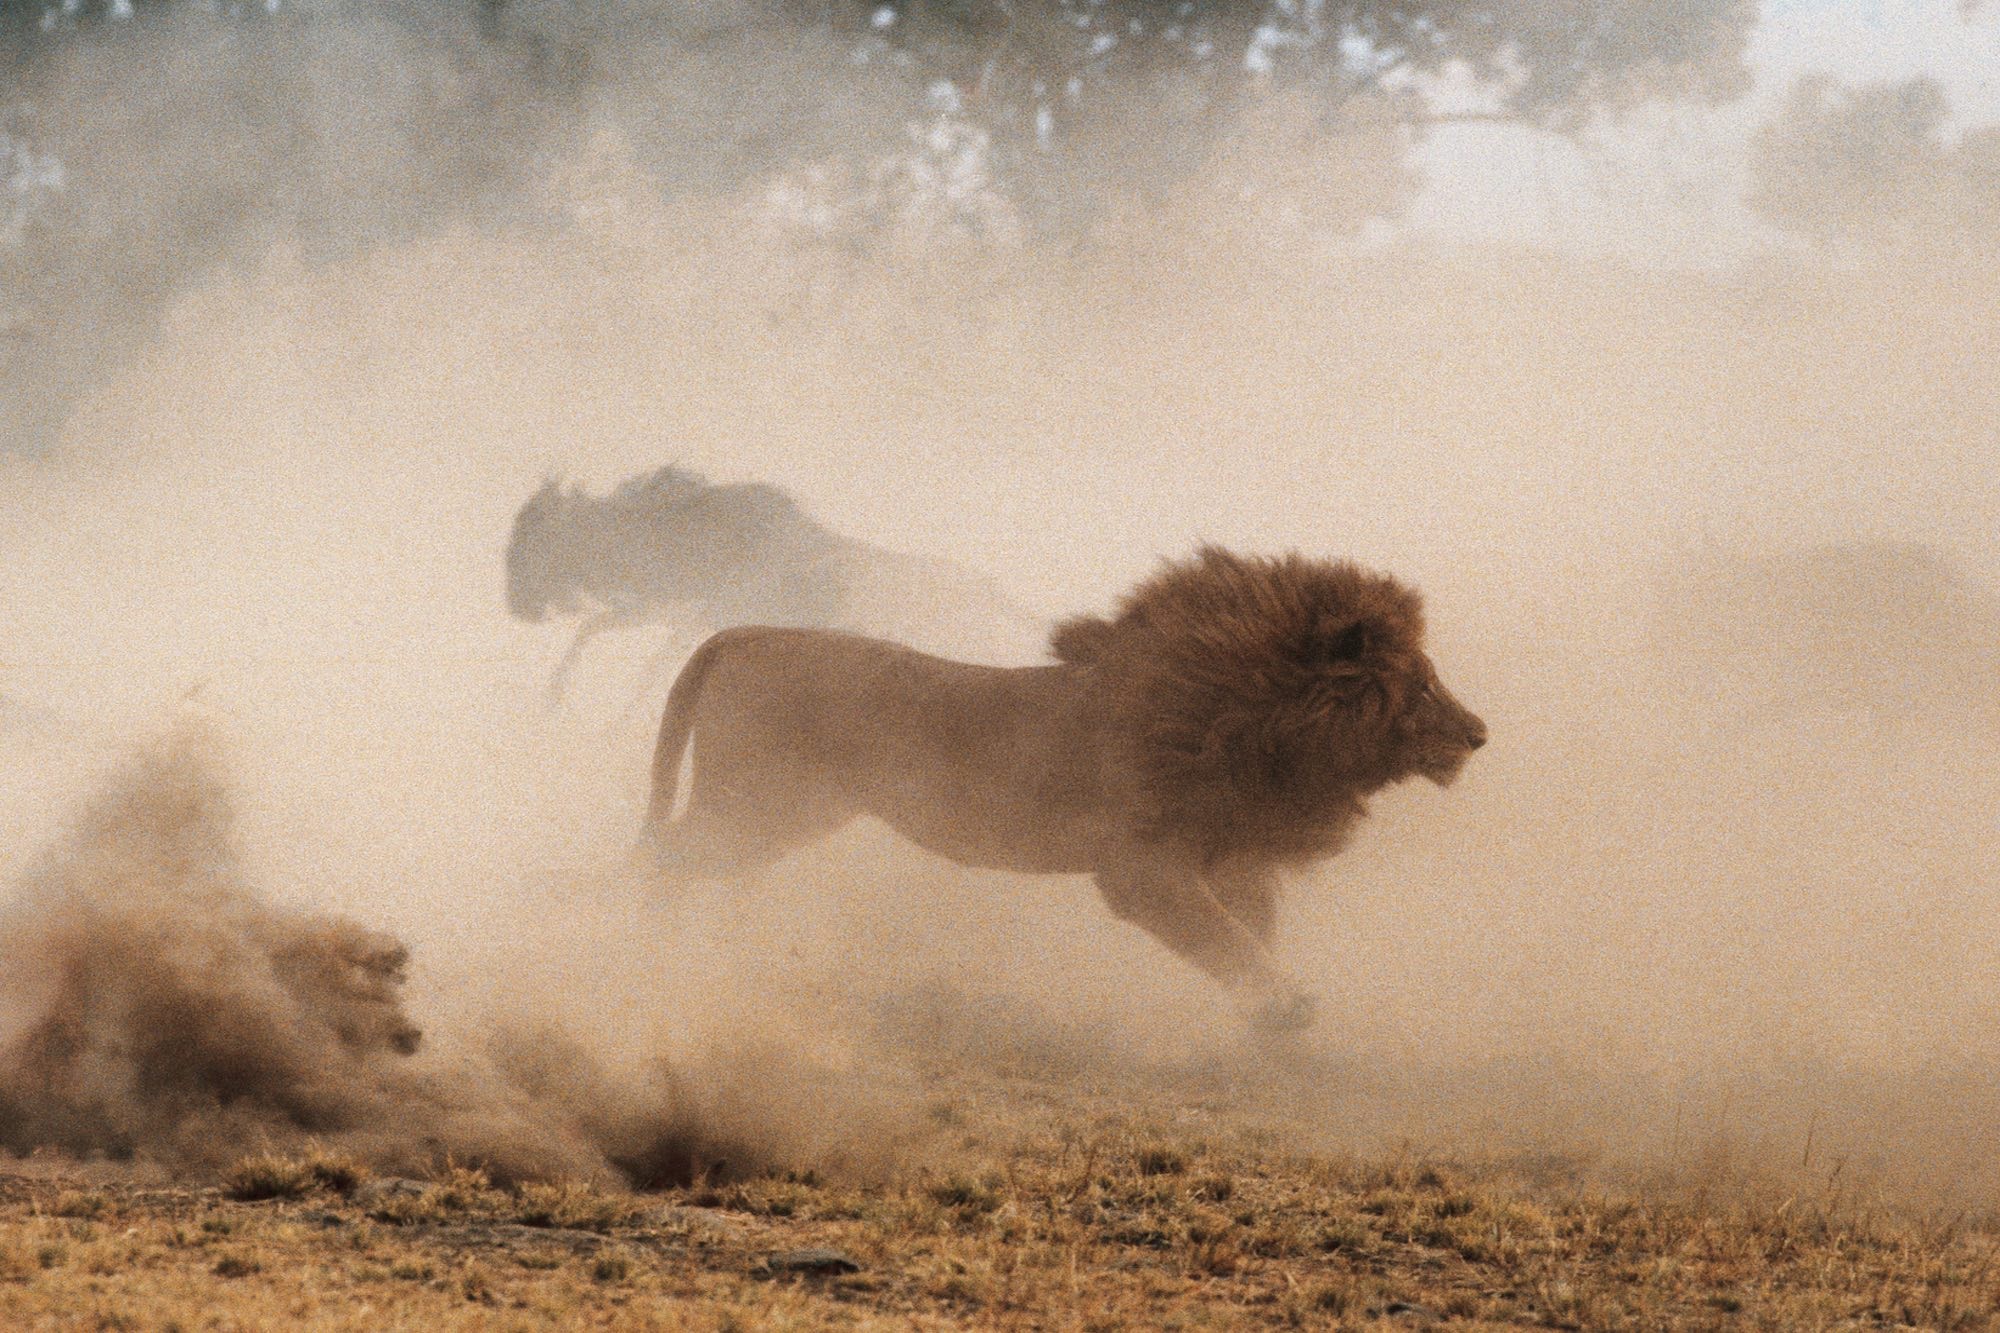 Lion and Wildebeests - Yann Arthus-Bertrand